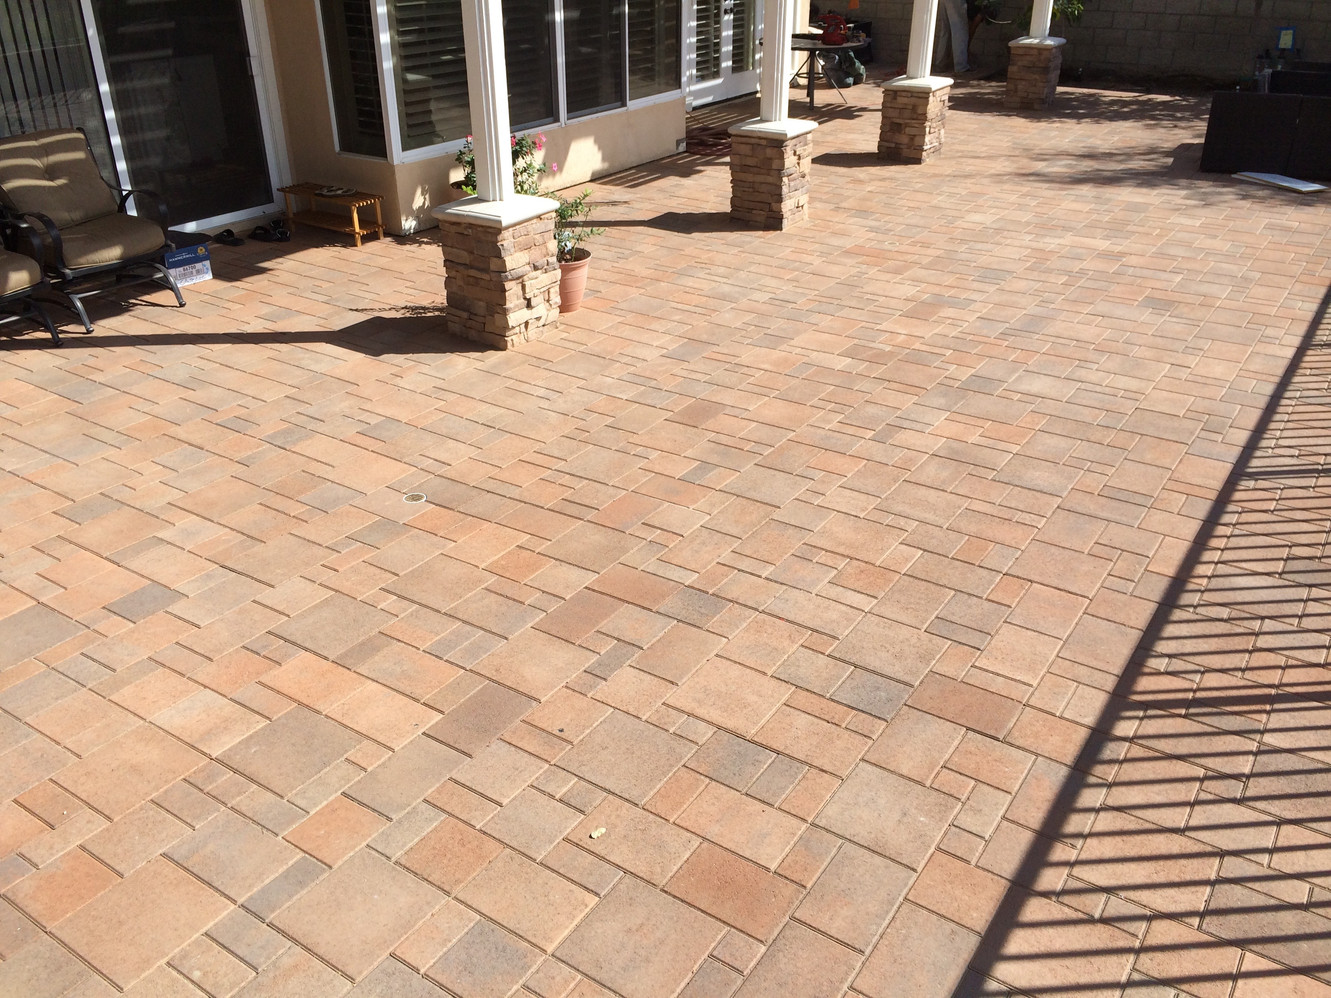 Pavers & Travertine